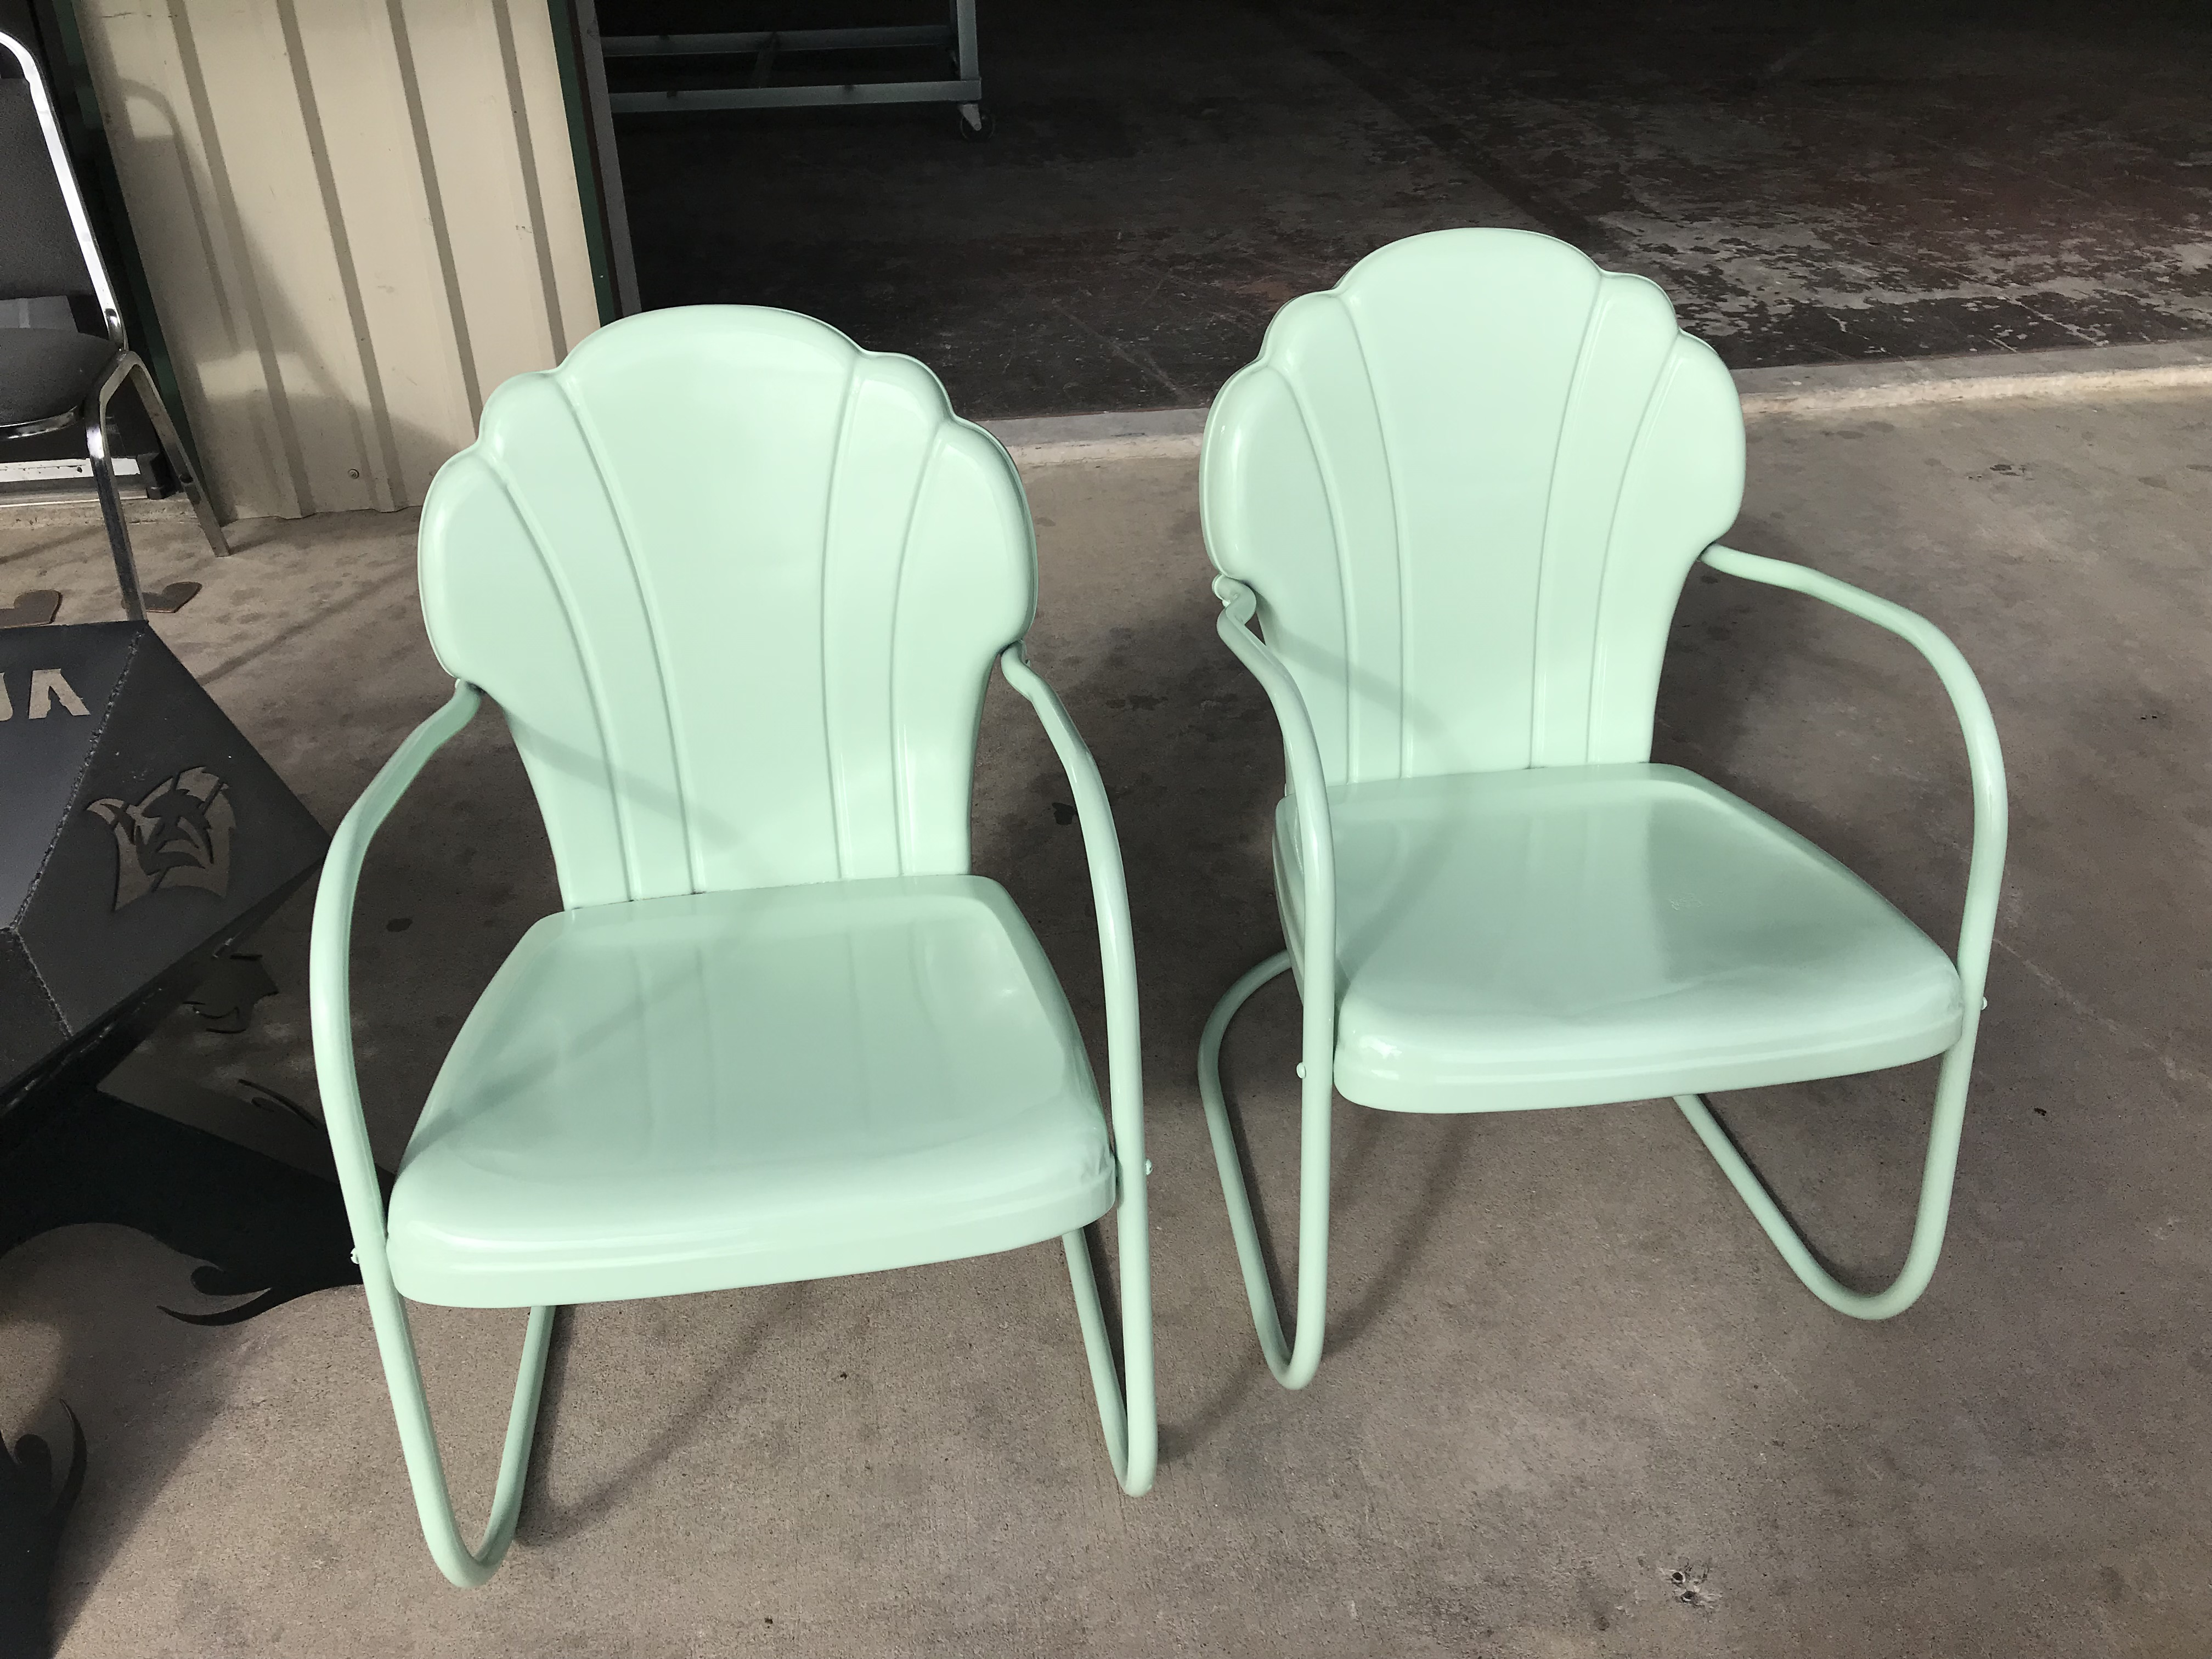 Antique Shell Back Chairs After